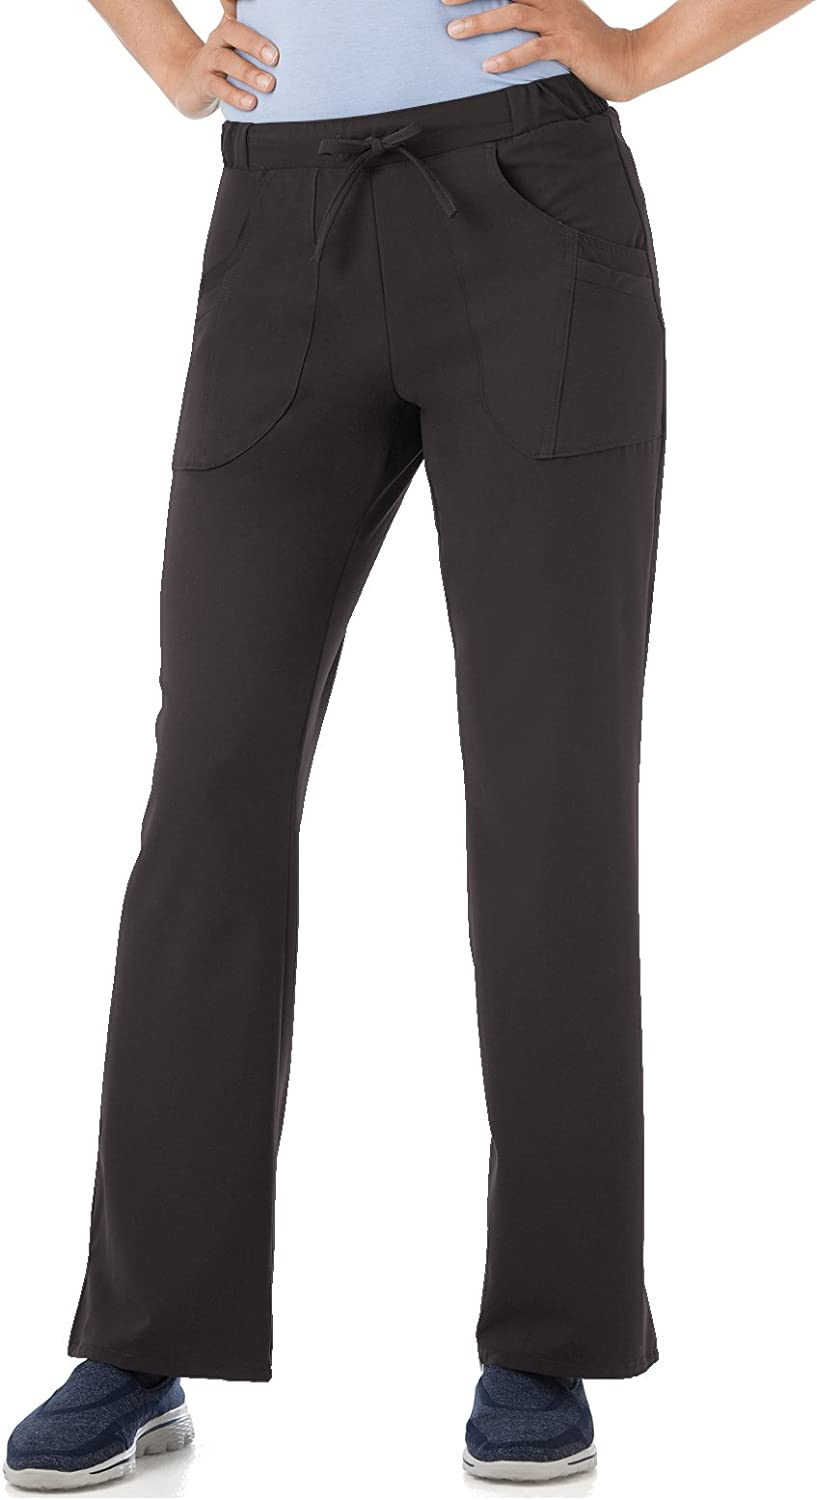 Jockey Women's Scrubs Selling rankings Extreme Pant Comfy Scrub Some reservation